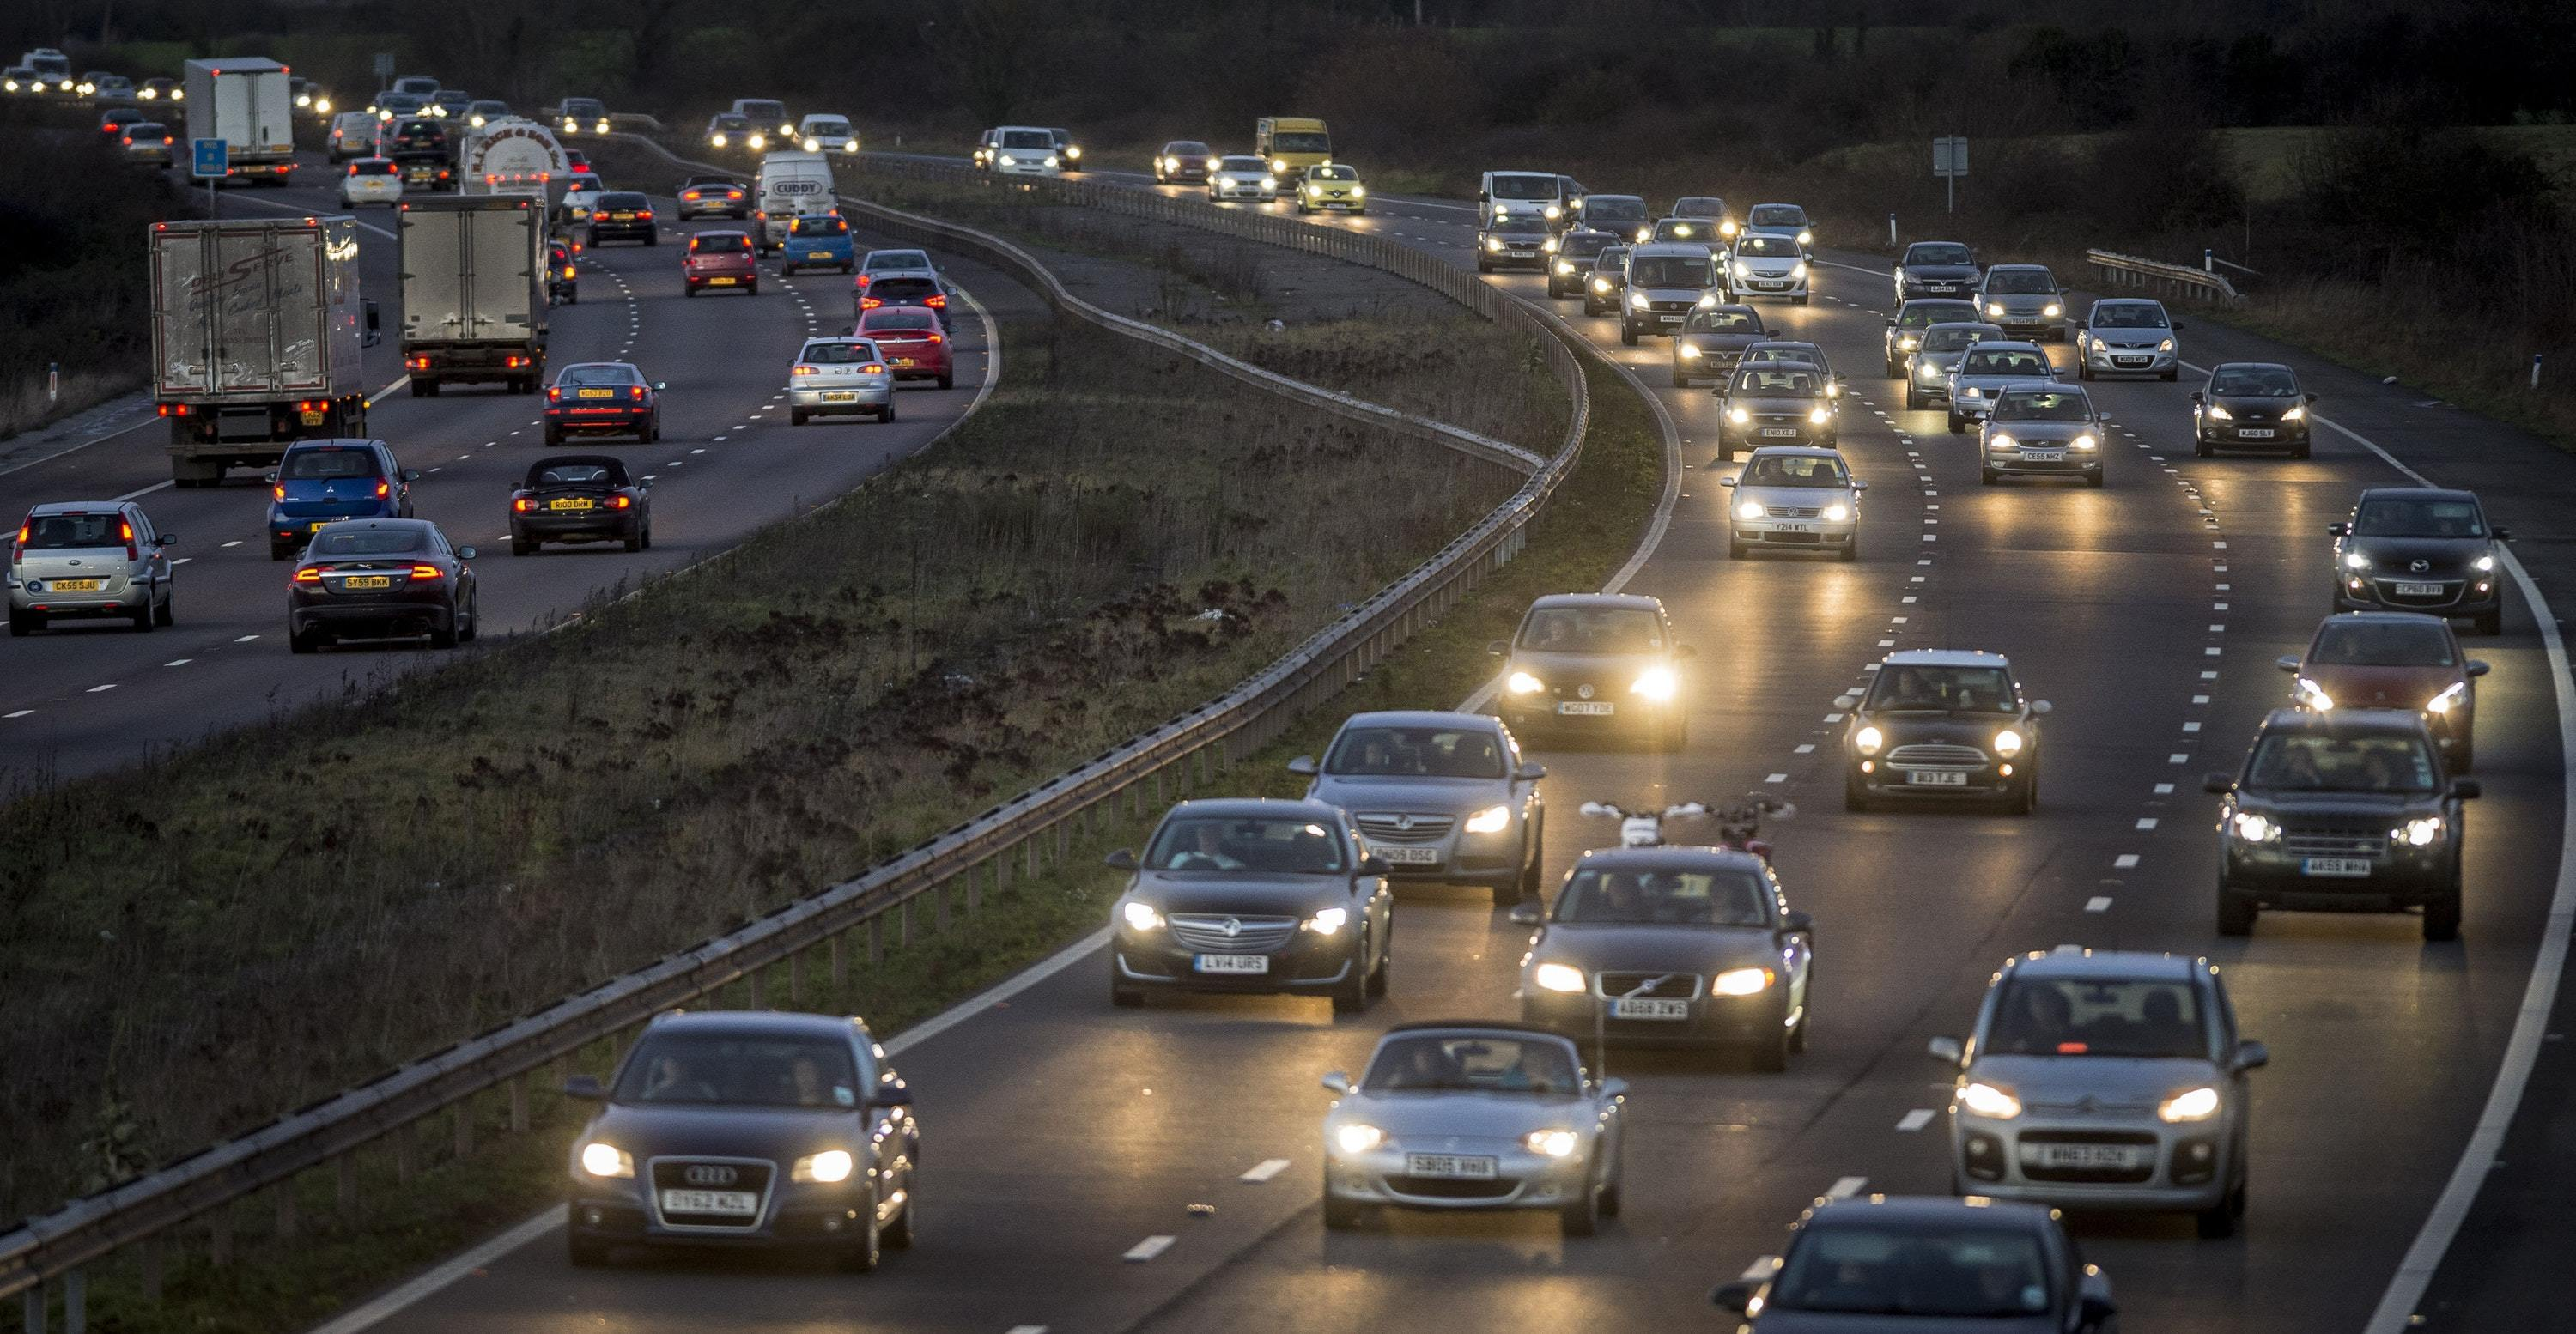 The vehicles will be banned in a bid to tackle air pollution (Ben Birchall/PA)